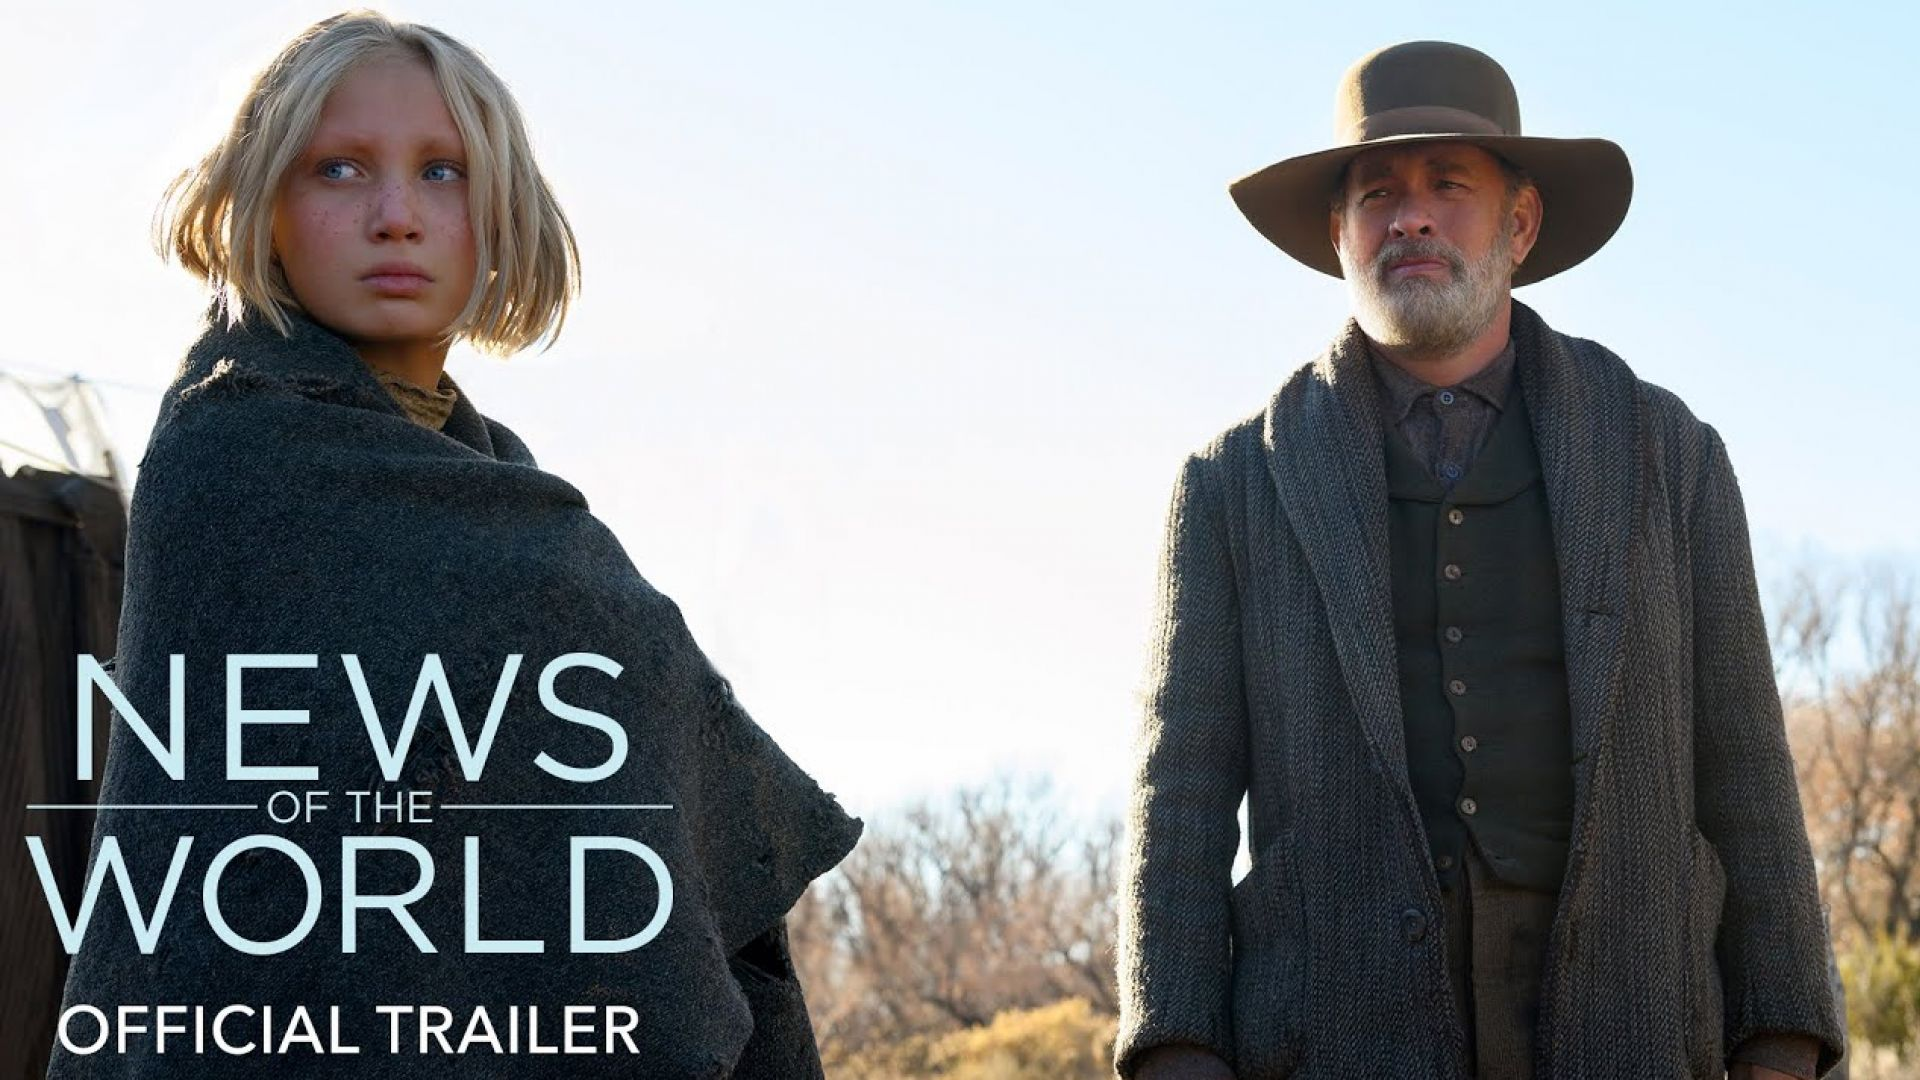 'News of the World' trailer by Paul Greengrass, with Tom Han